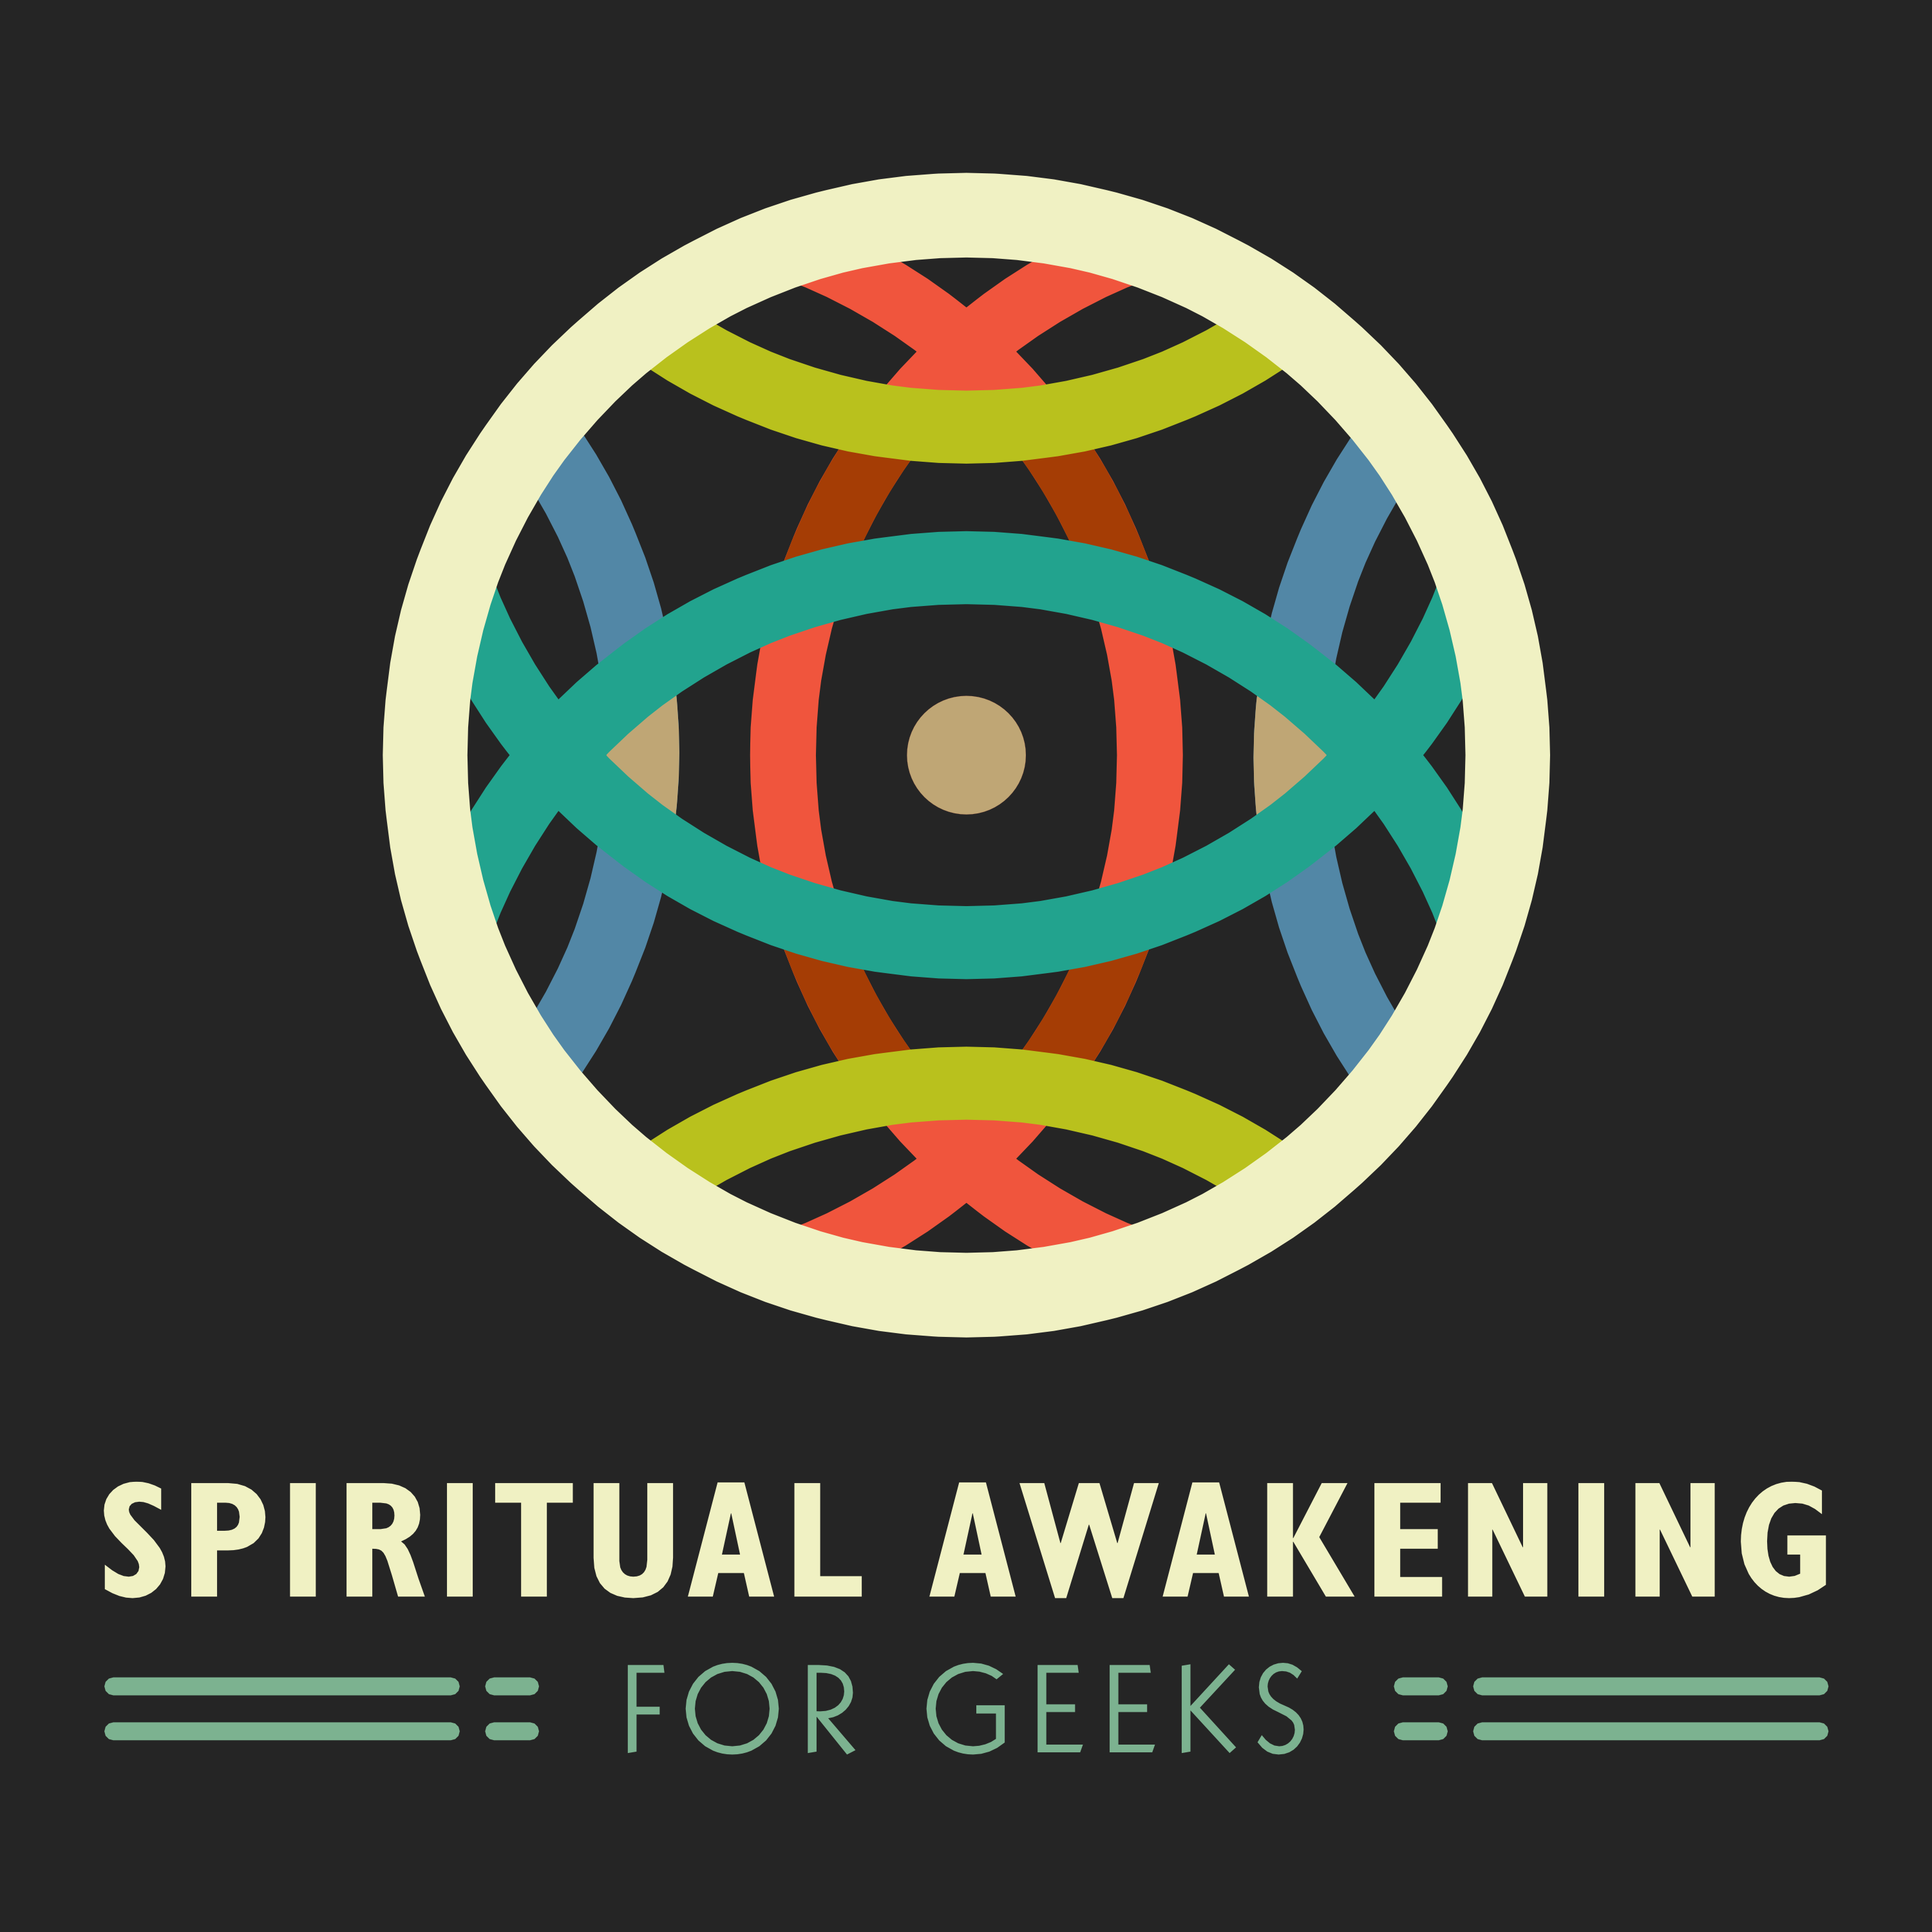 Spiritual Awakening for Geeks